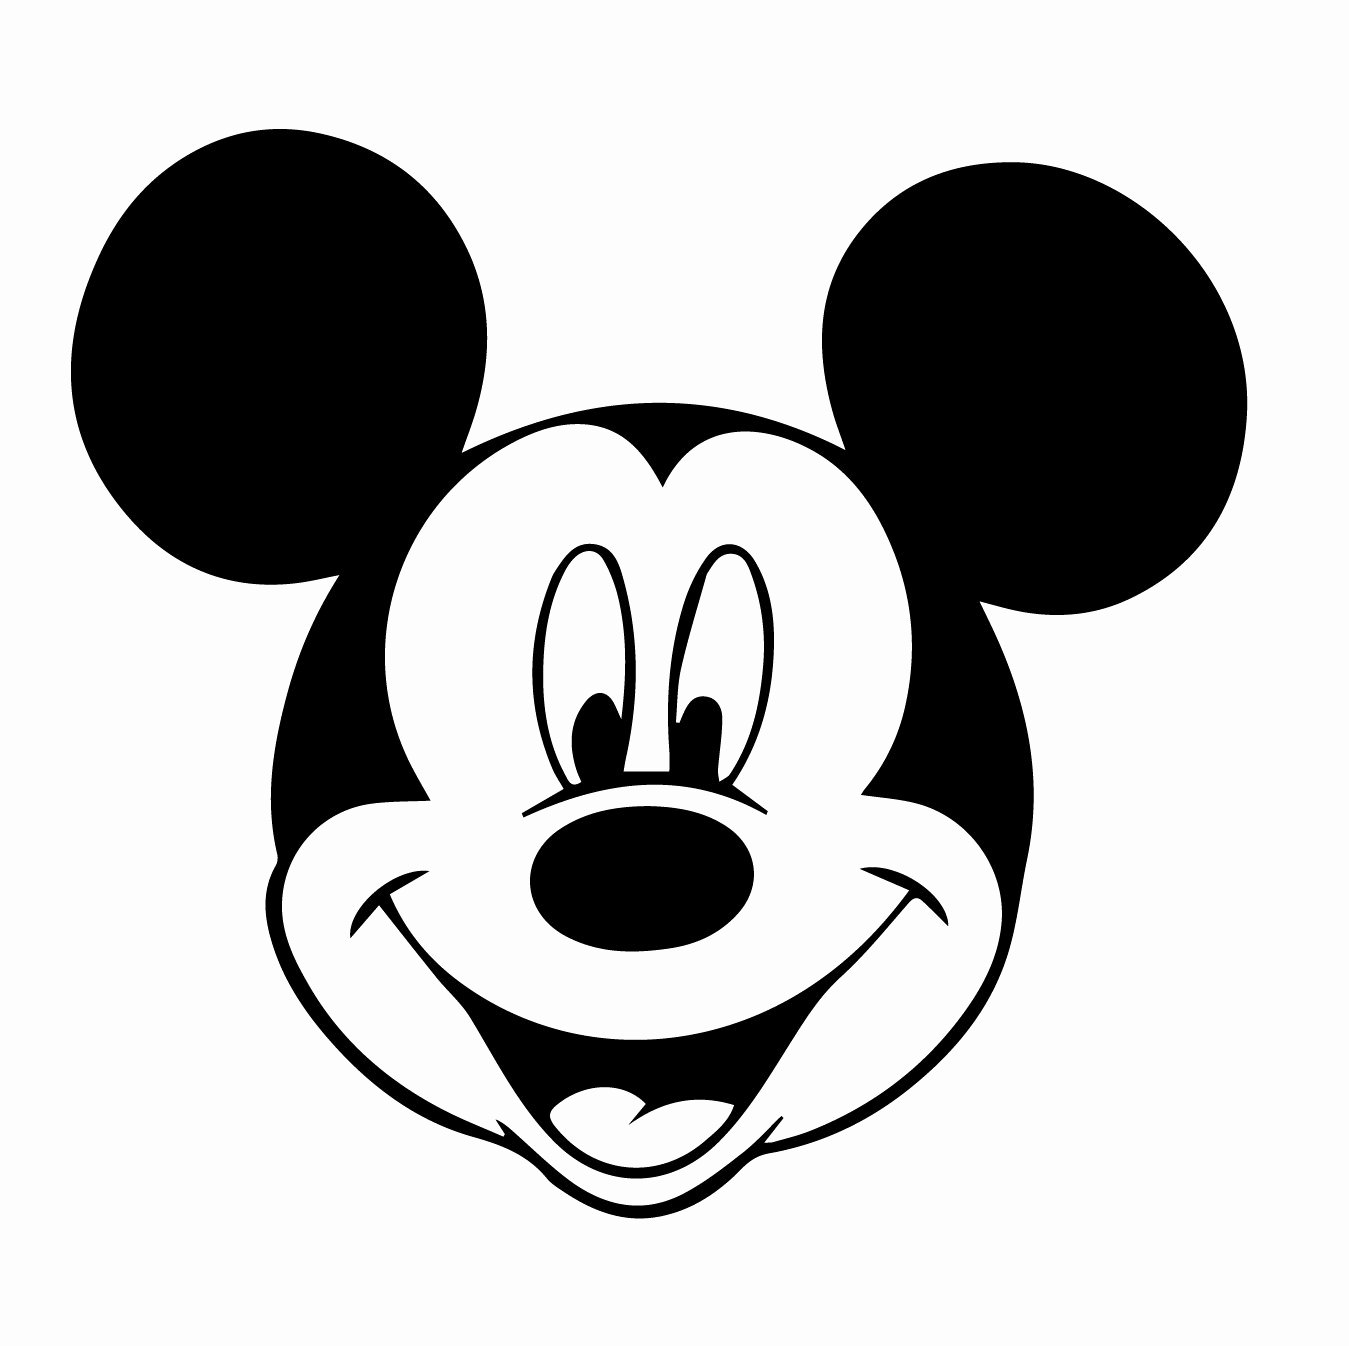 Mickey Mouse Silhouette Printable Best Of Mickey Mouse Face Silhouette at Getdrawings